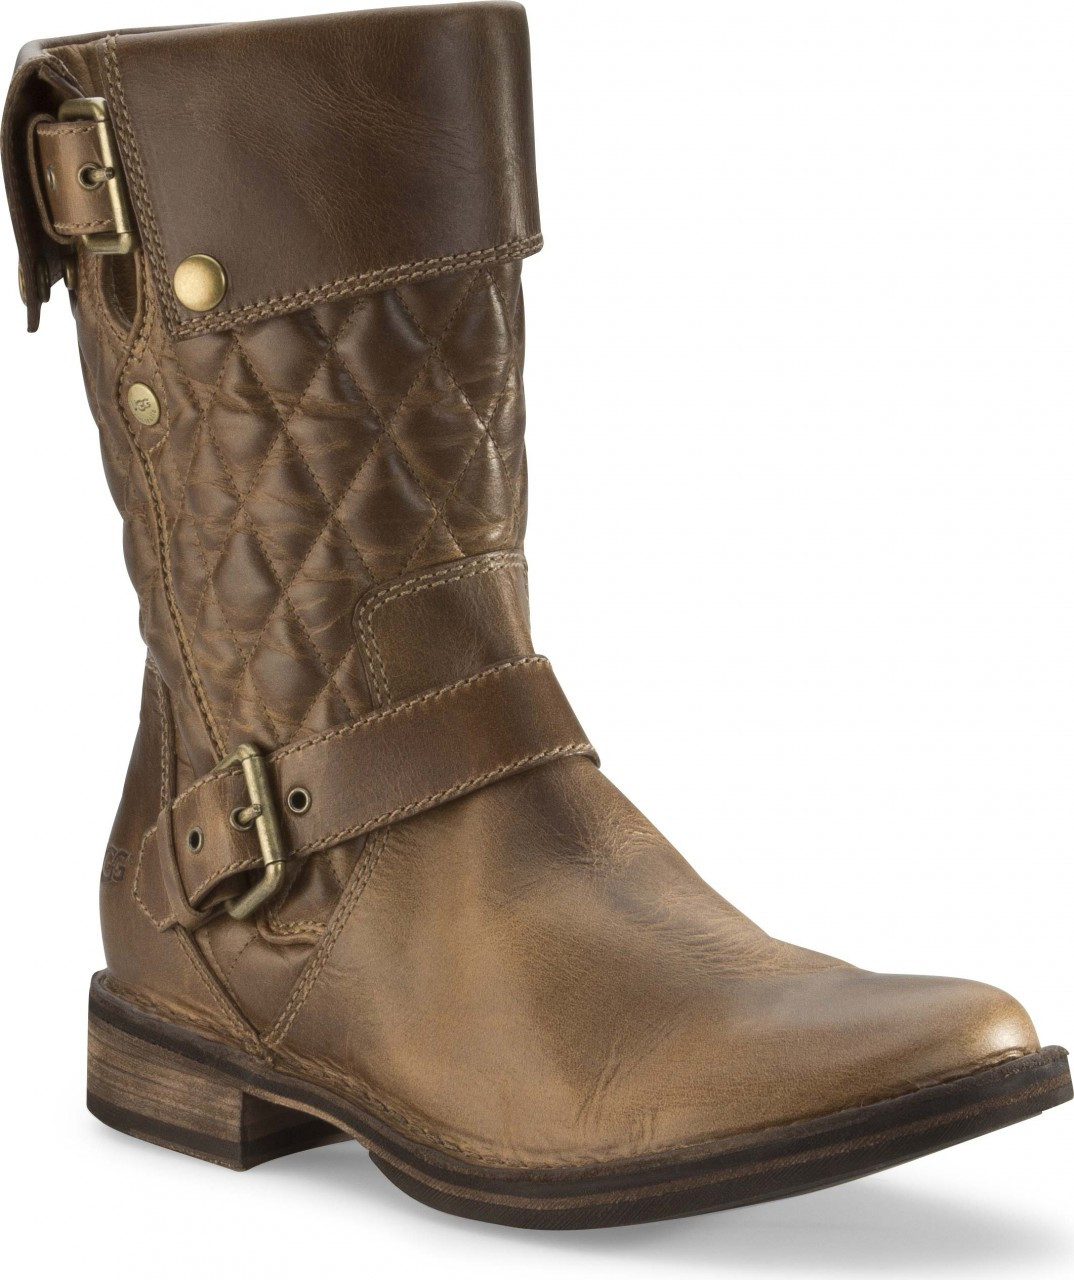 neidagrosk0dwju.ga offers Size 10 Womens Boots at cheap prices, so you can shop from a huge selection of Size 10 Womens Boots, FREE Shipping available worldwide.